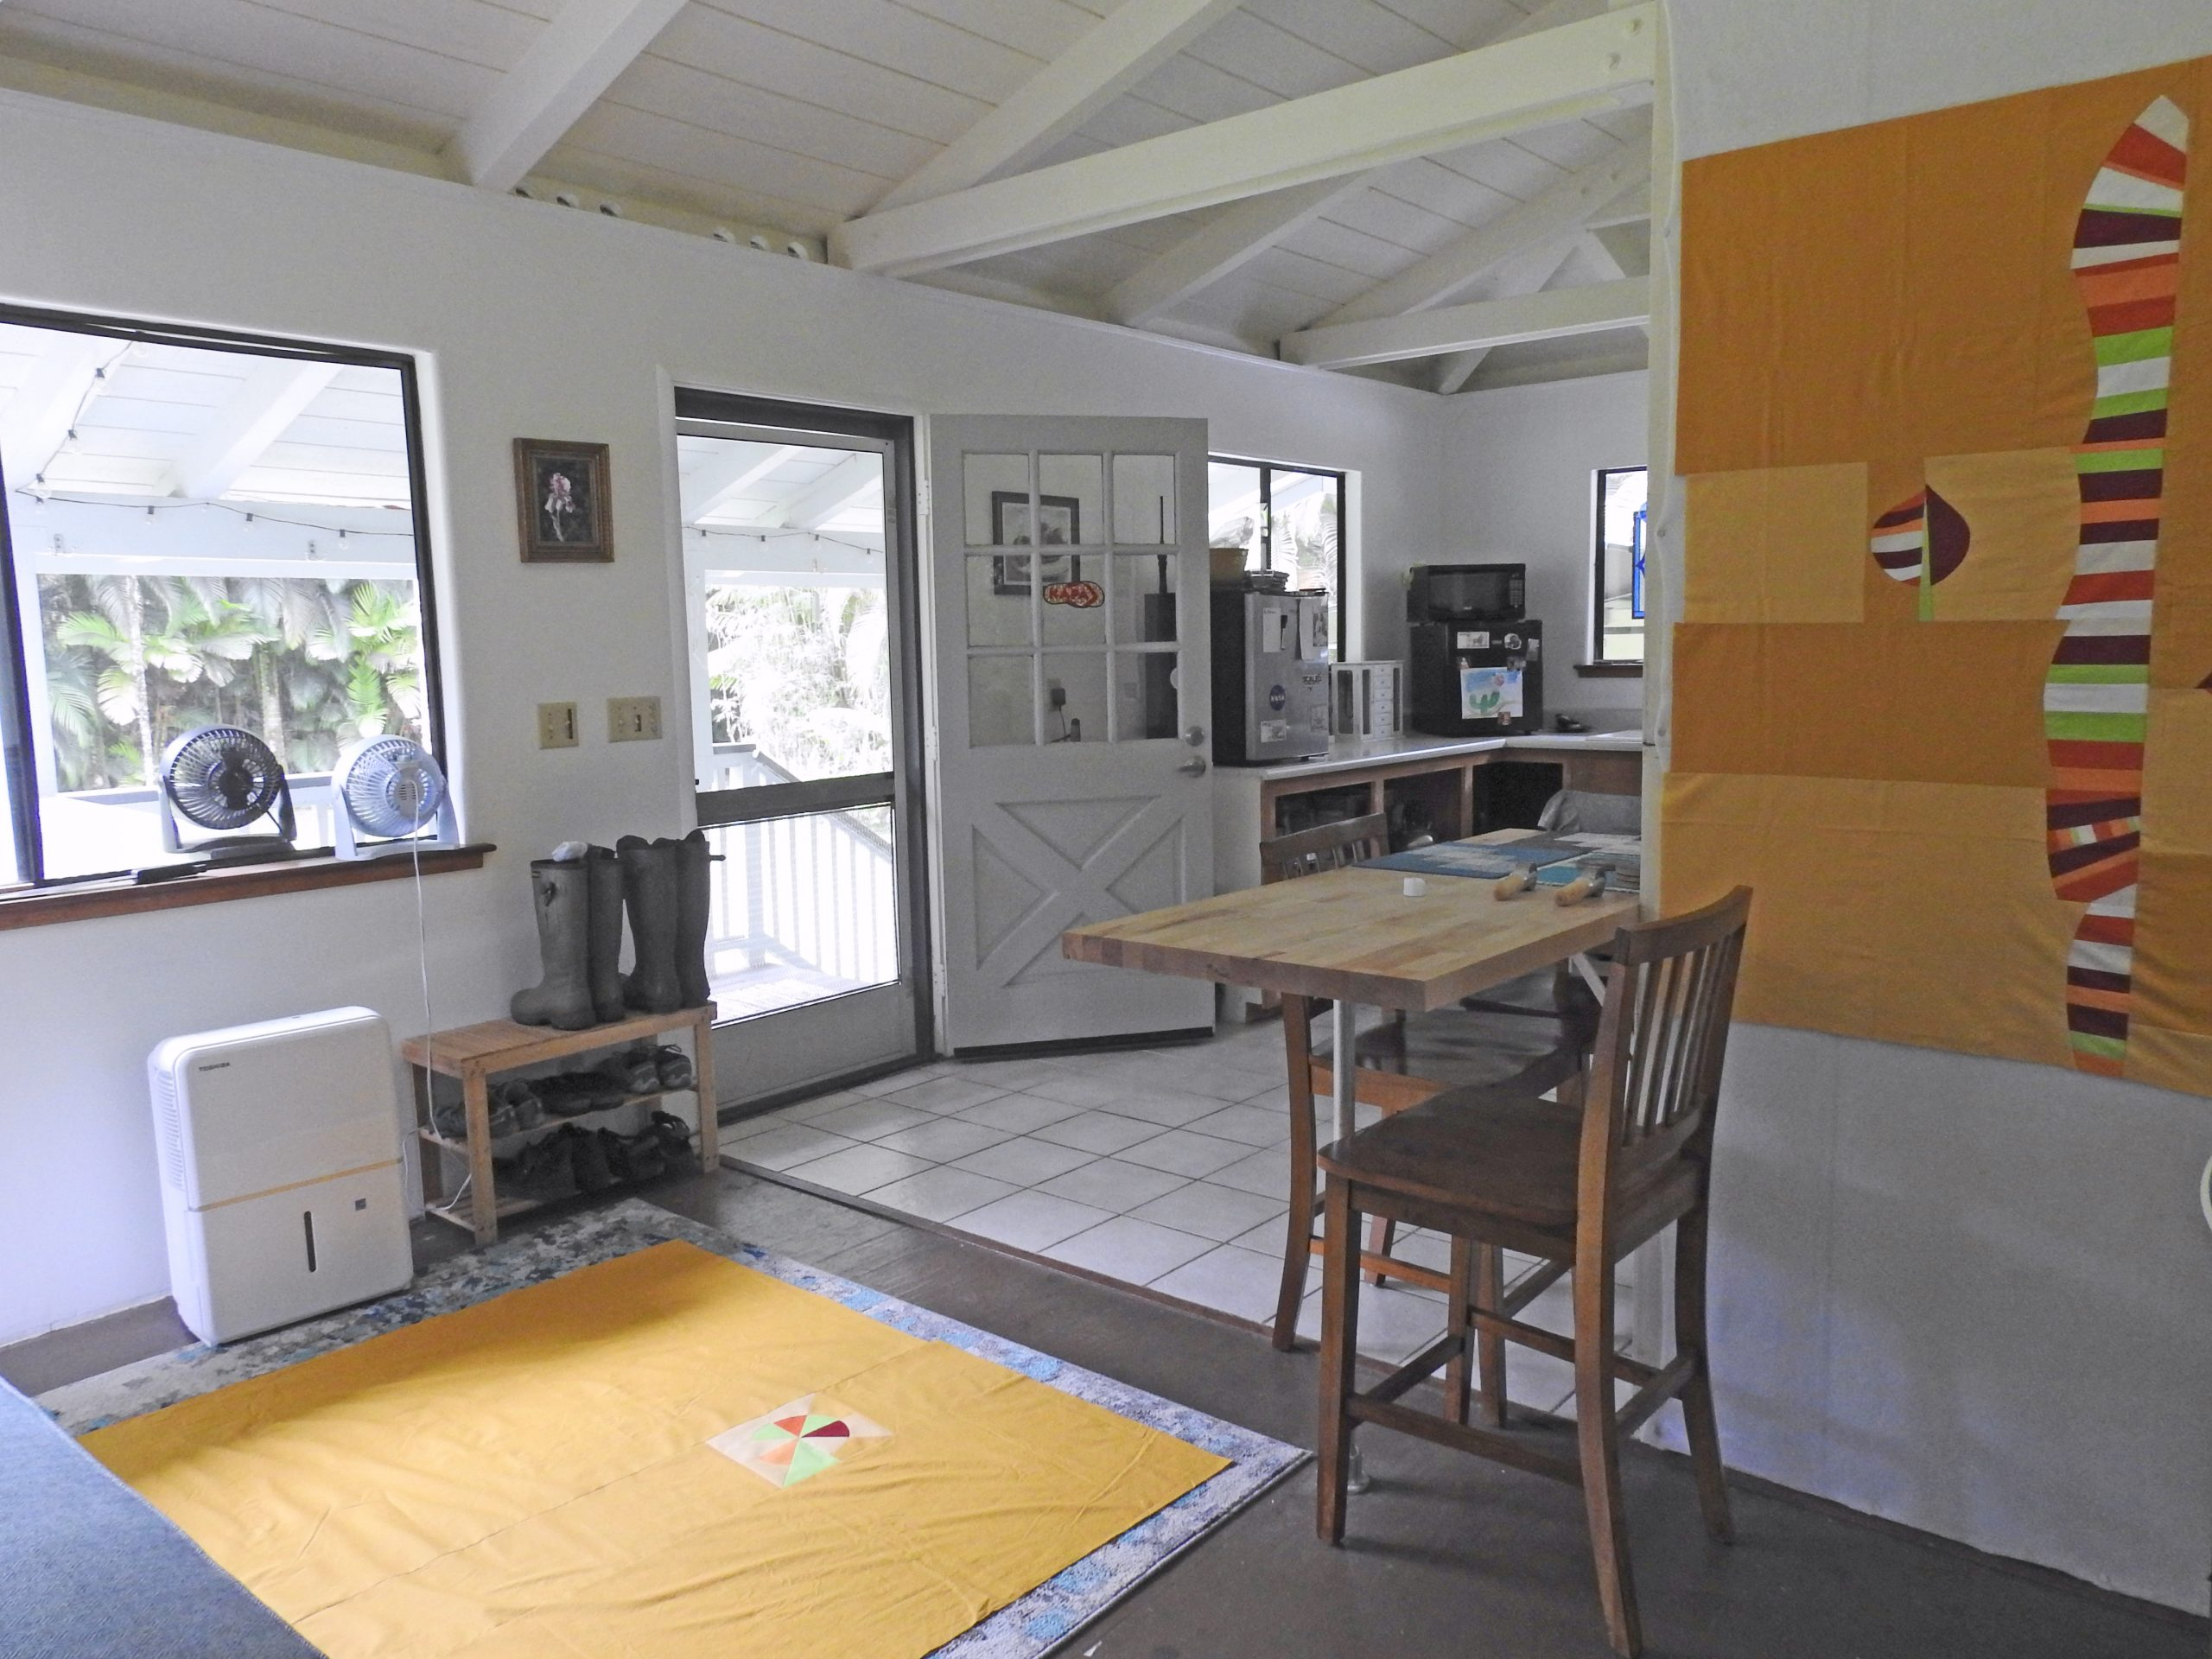 Quilting in a Small Space